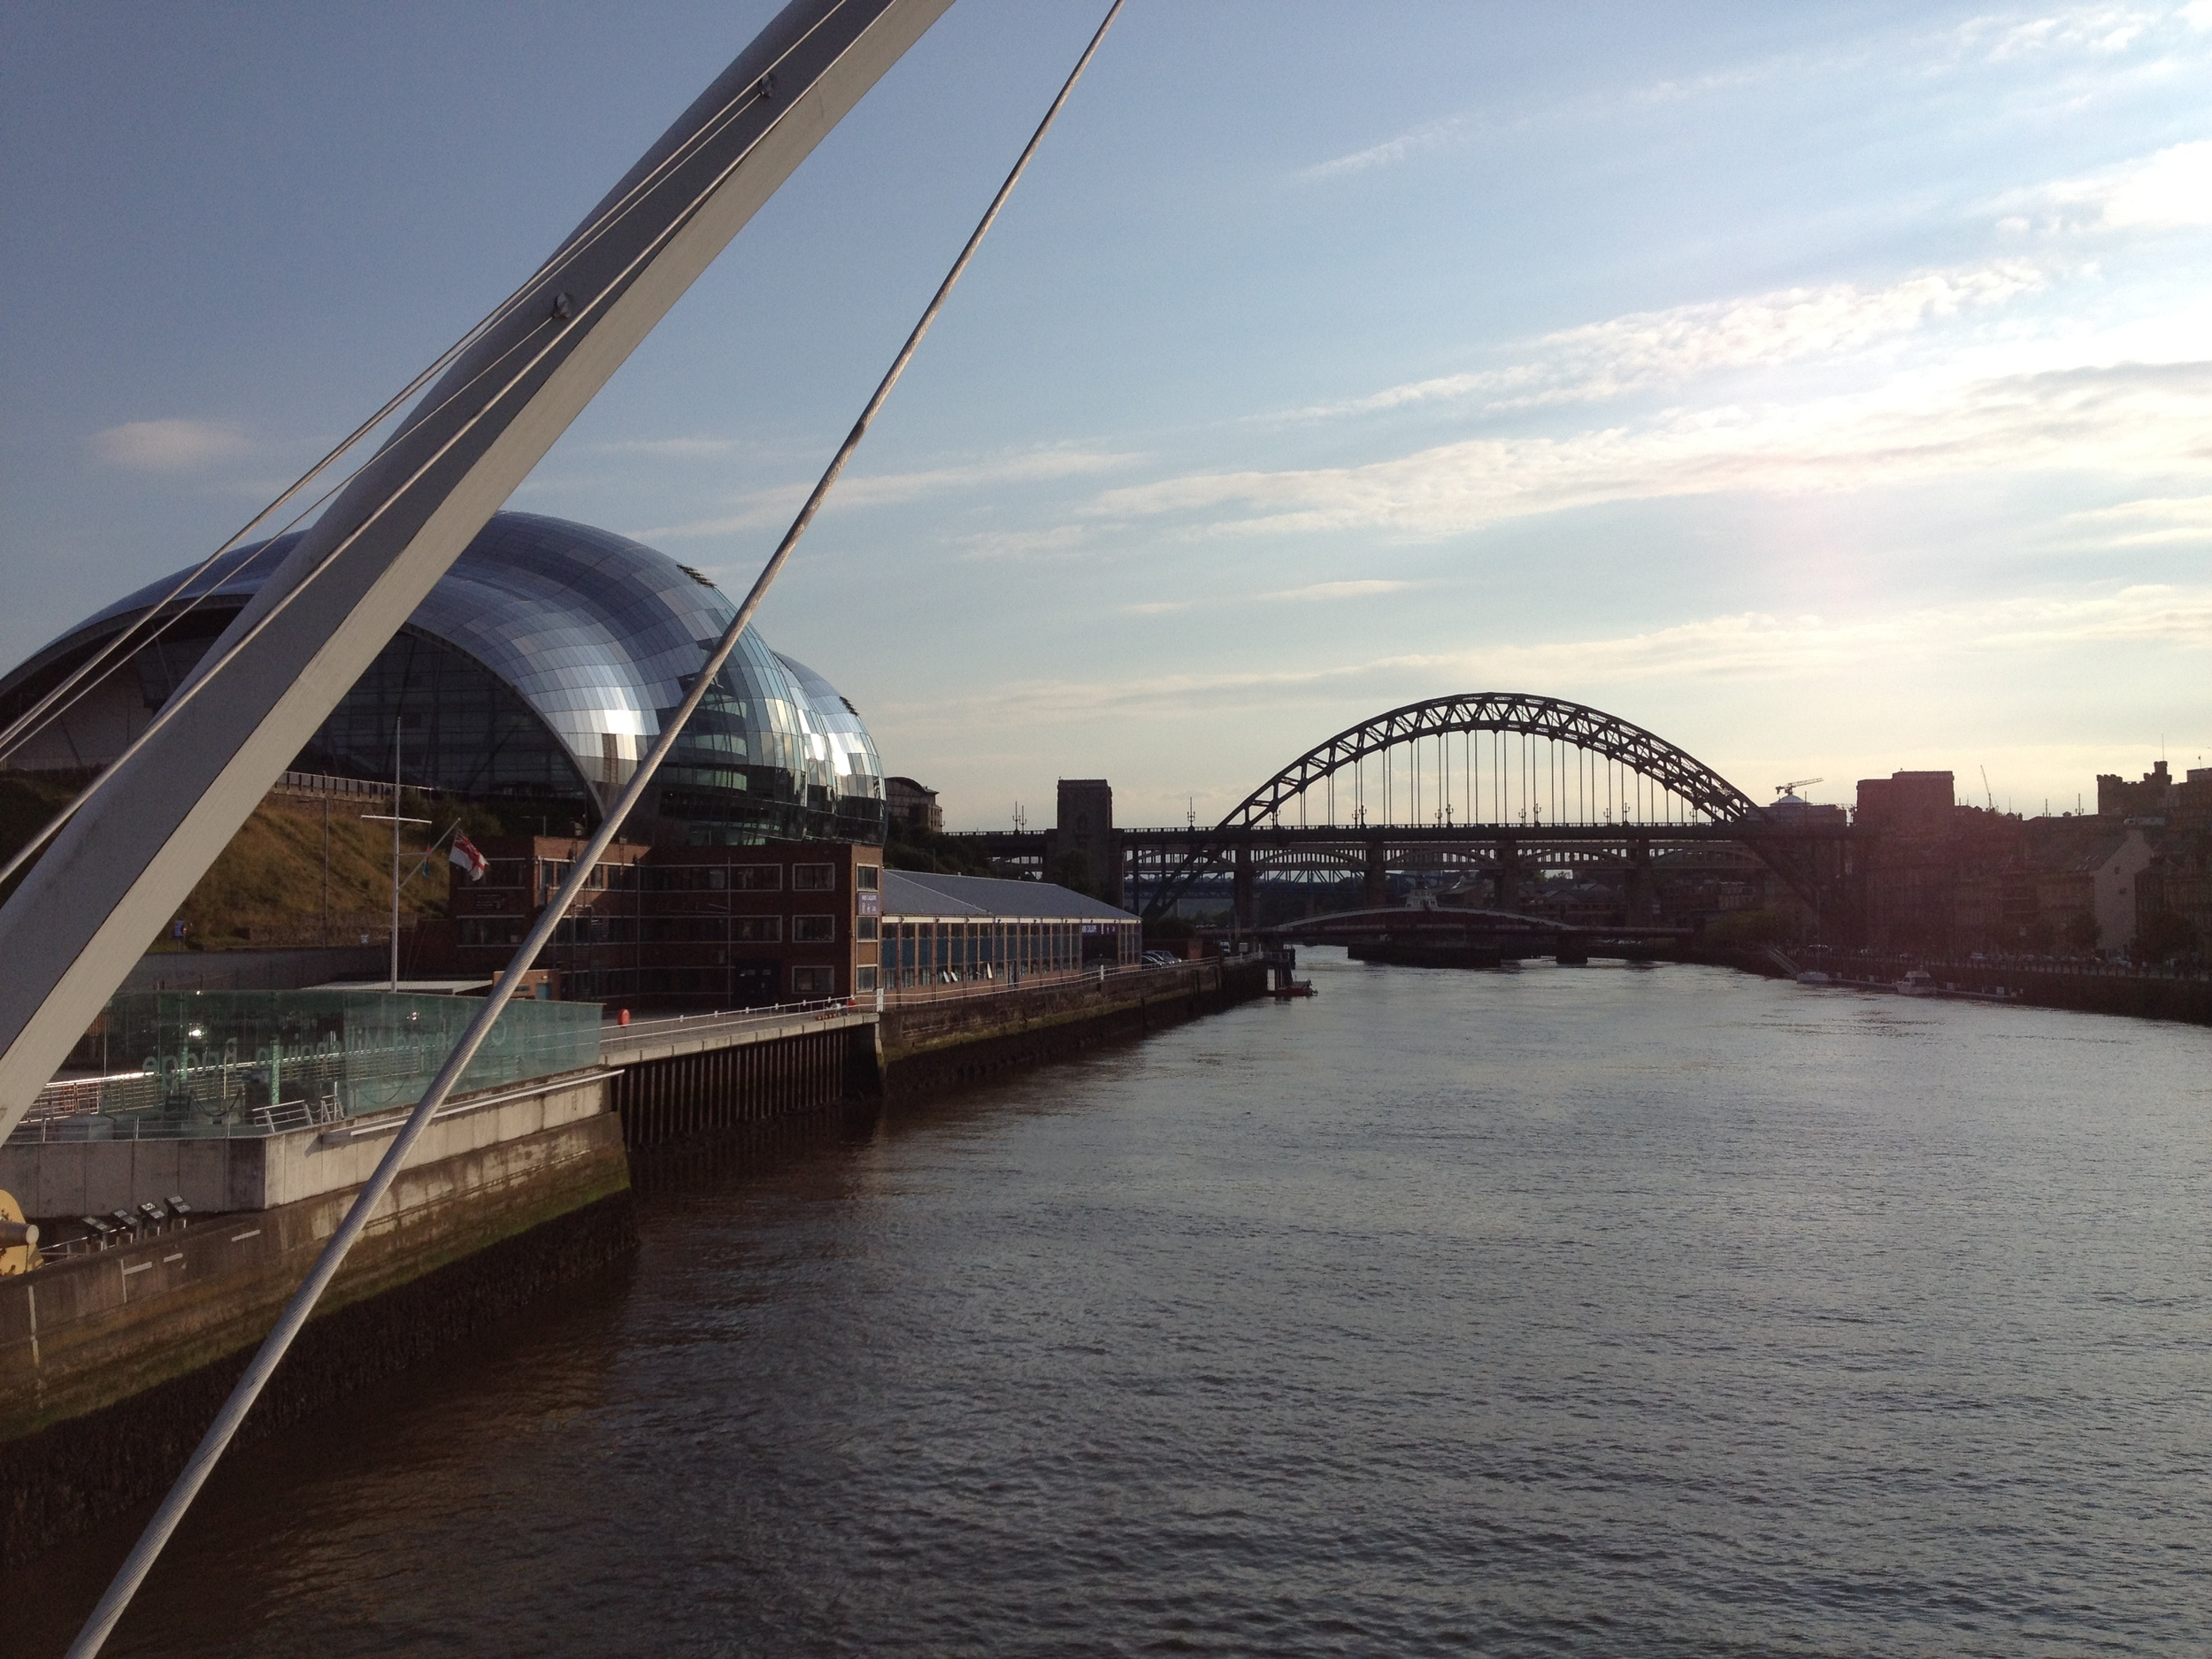 The Sage Gateshead and the Tyne Bridge, photo by Paul Forrester